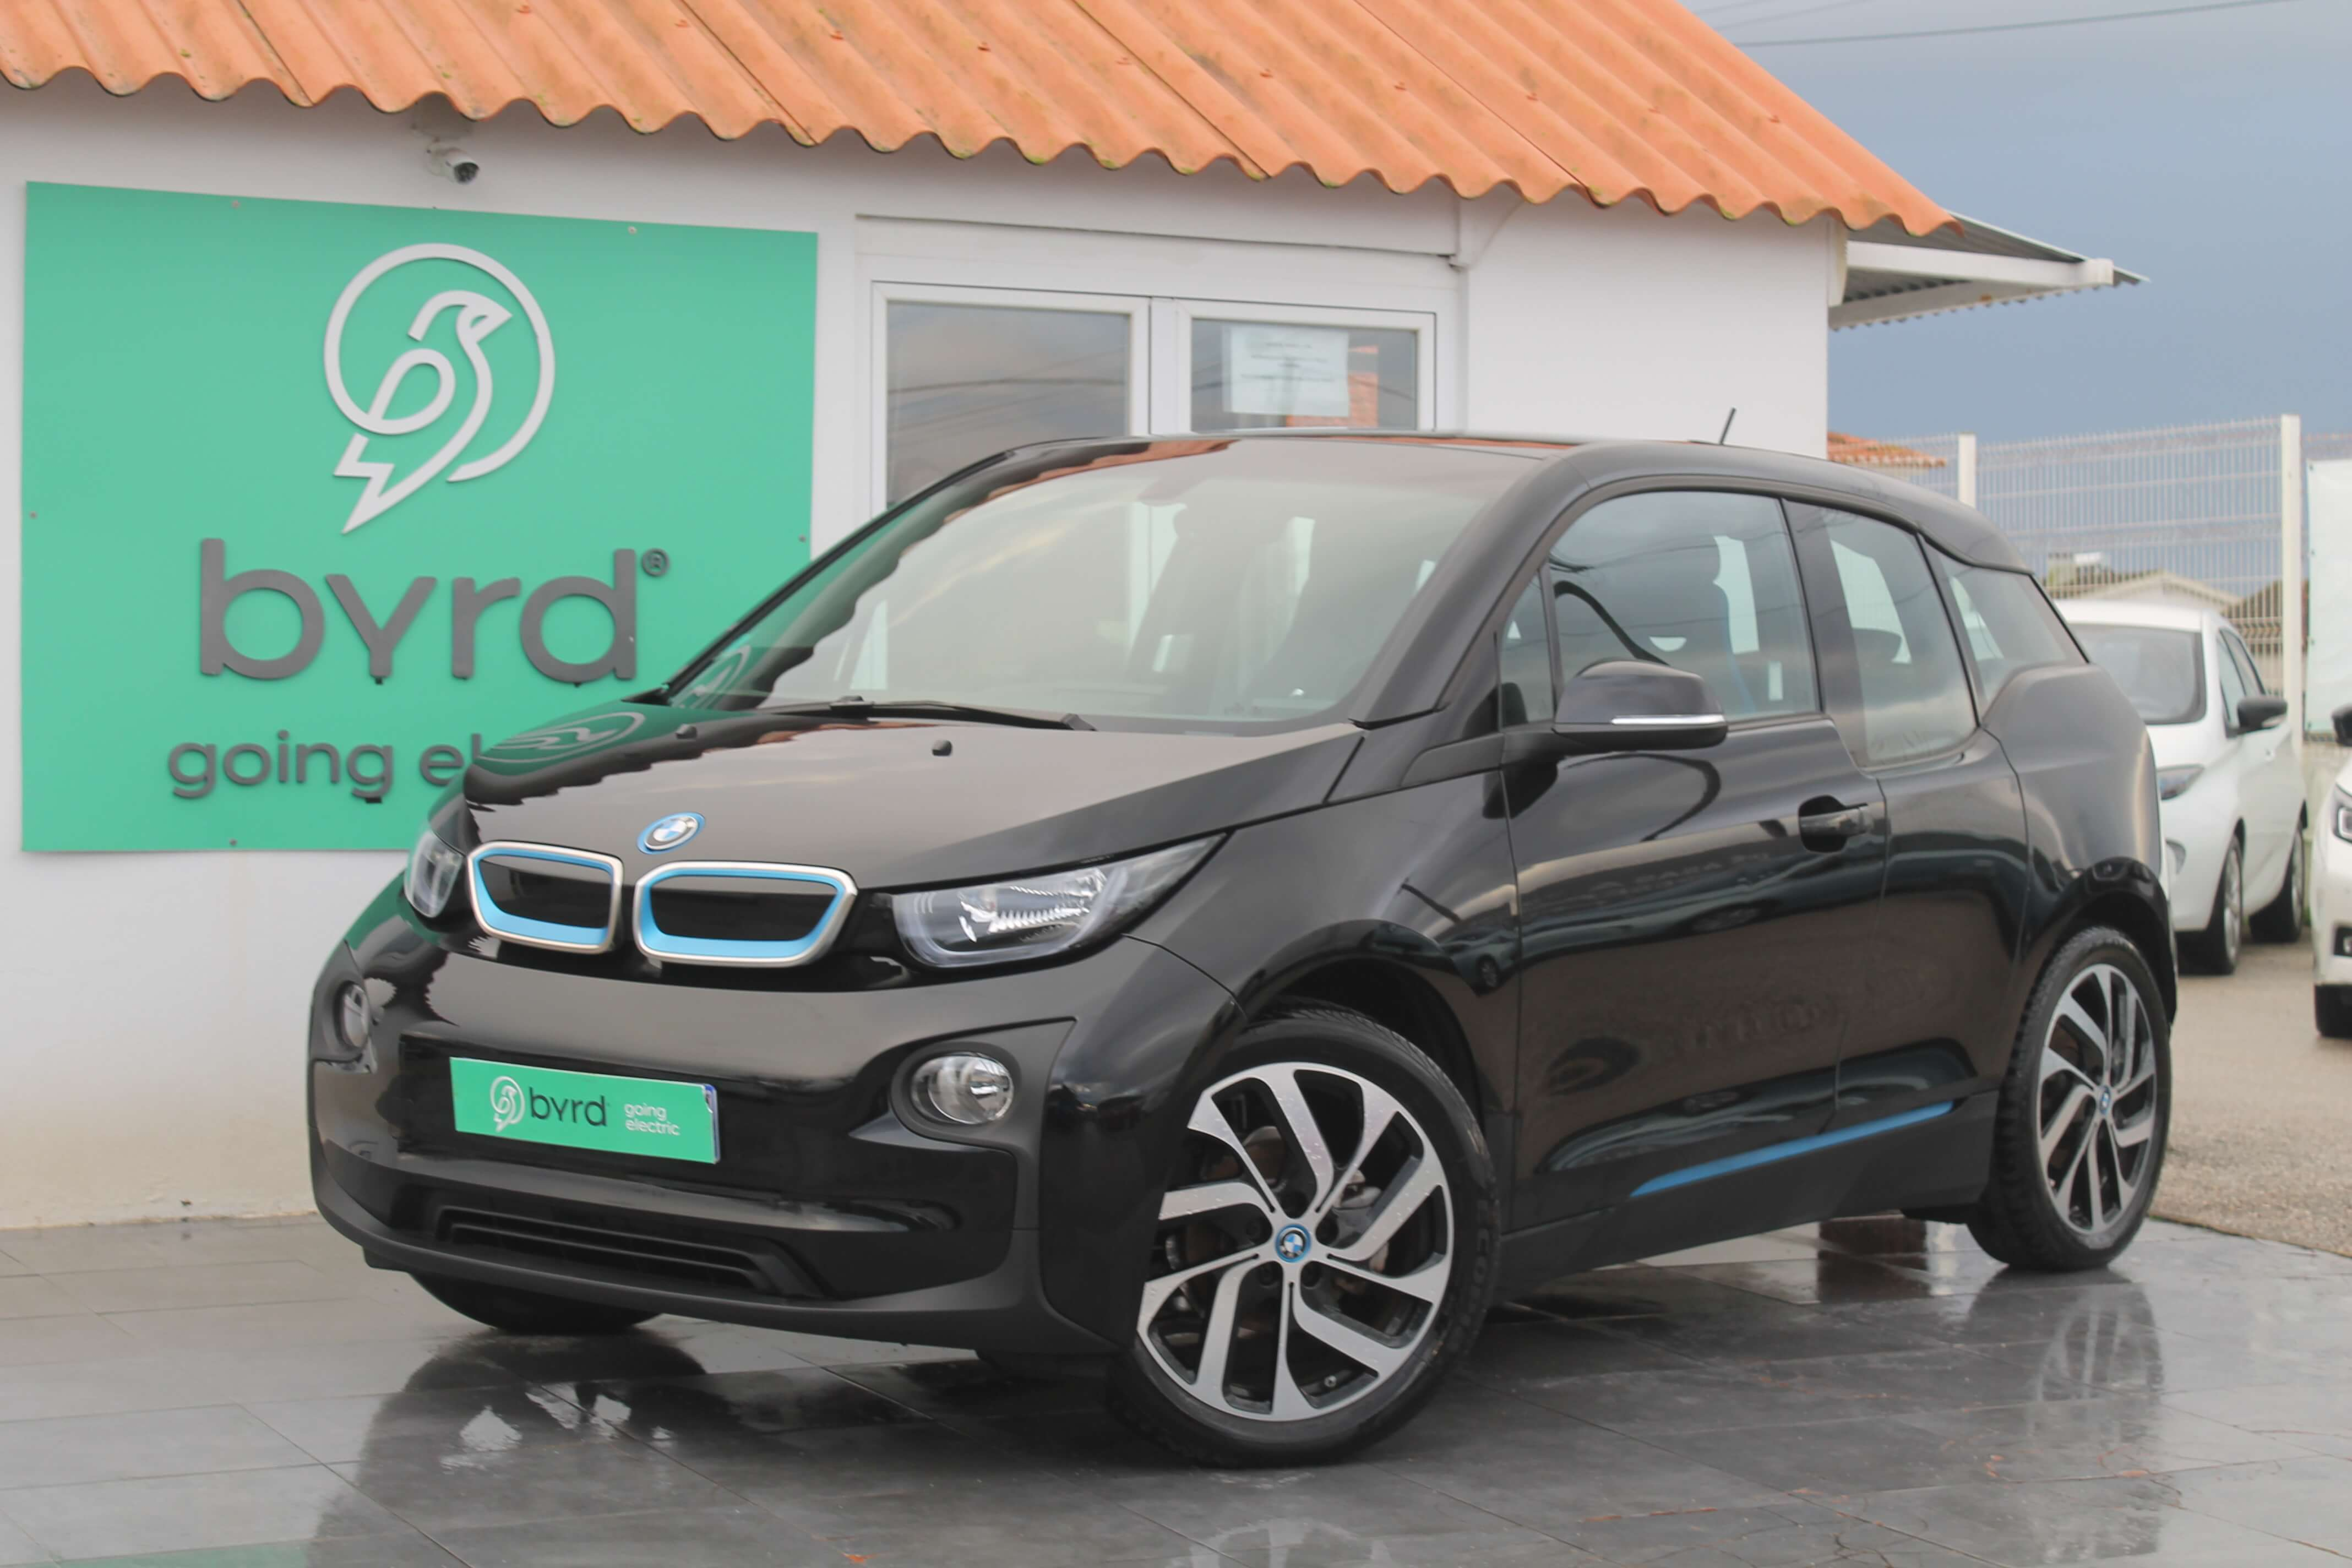 Bmw i3 Electrico 94ah